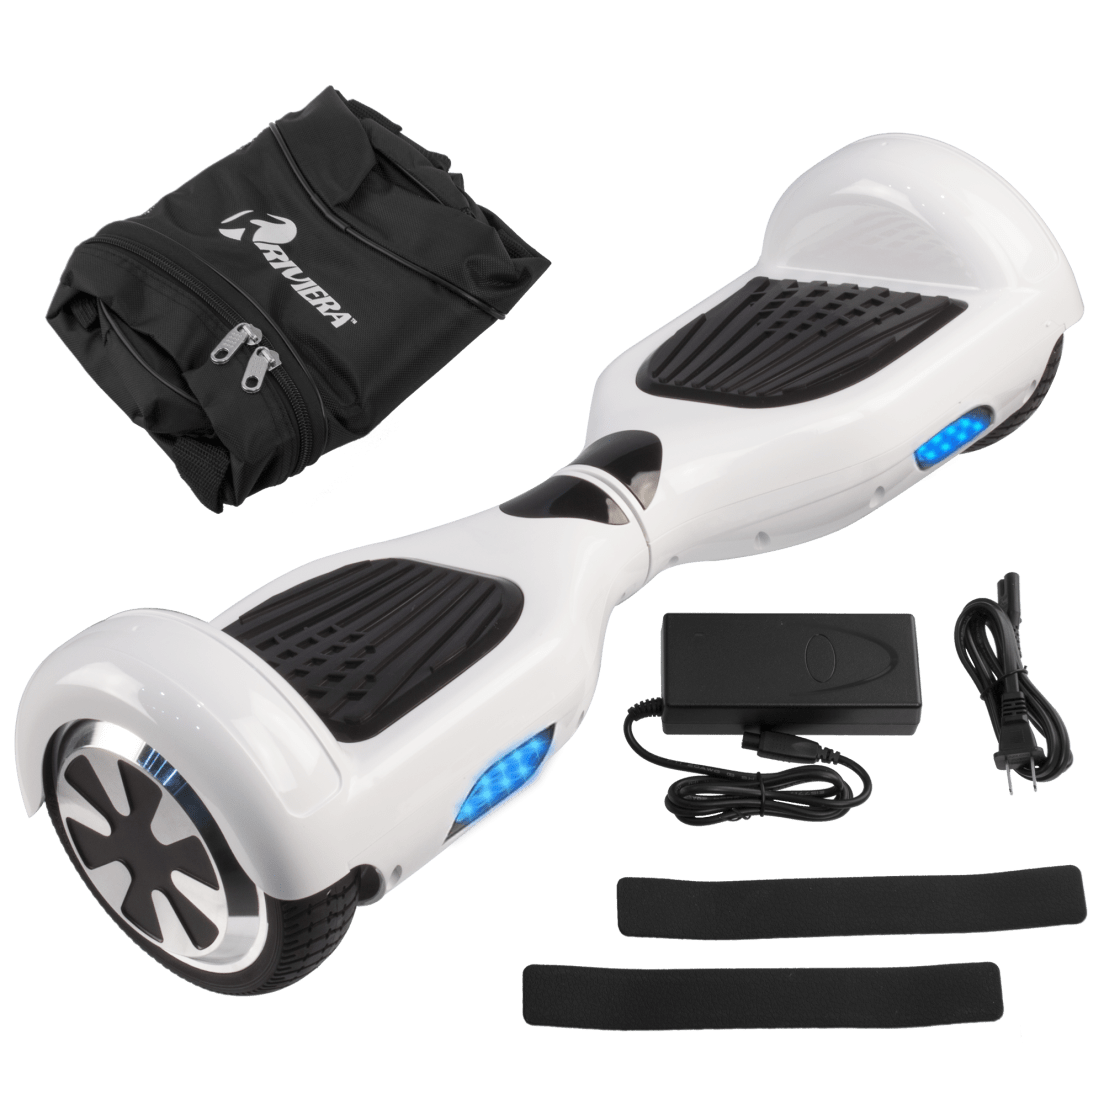 Riviera Ul2272 Certified Hoverboard Self Balancing Scooter Vip Keychain